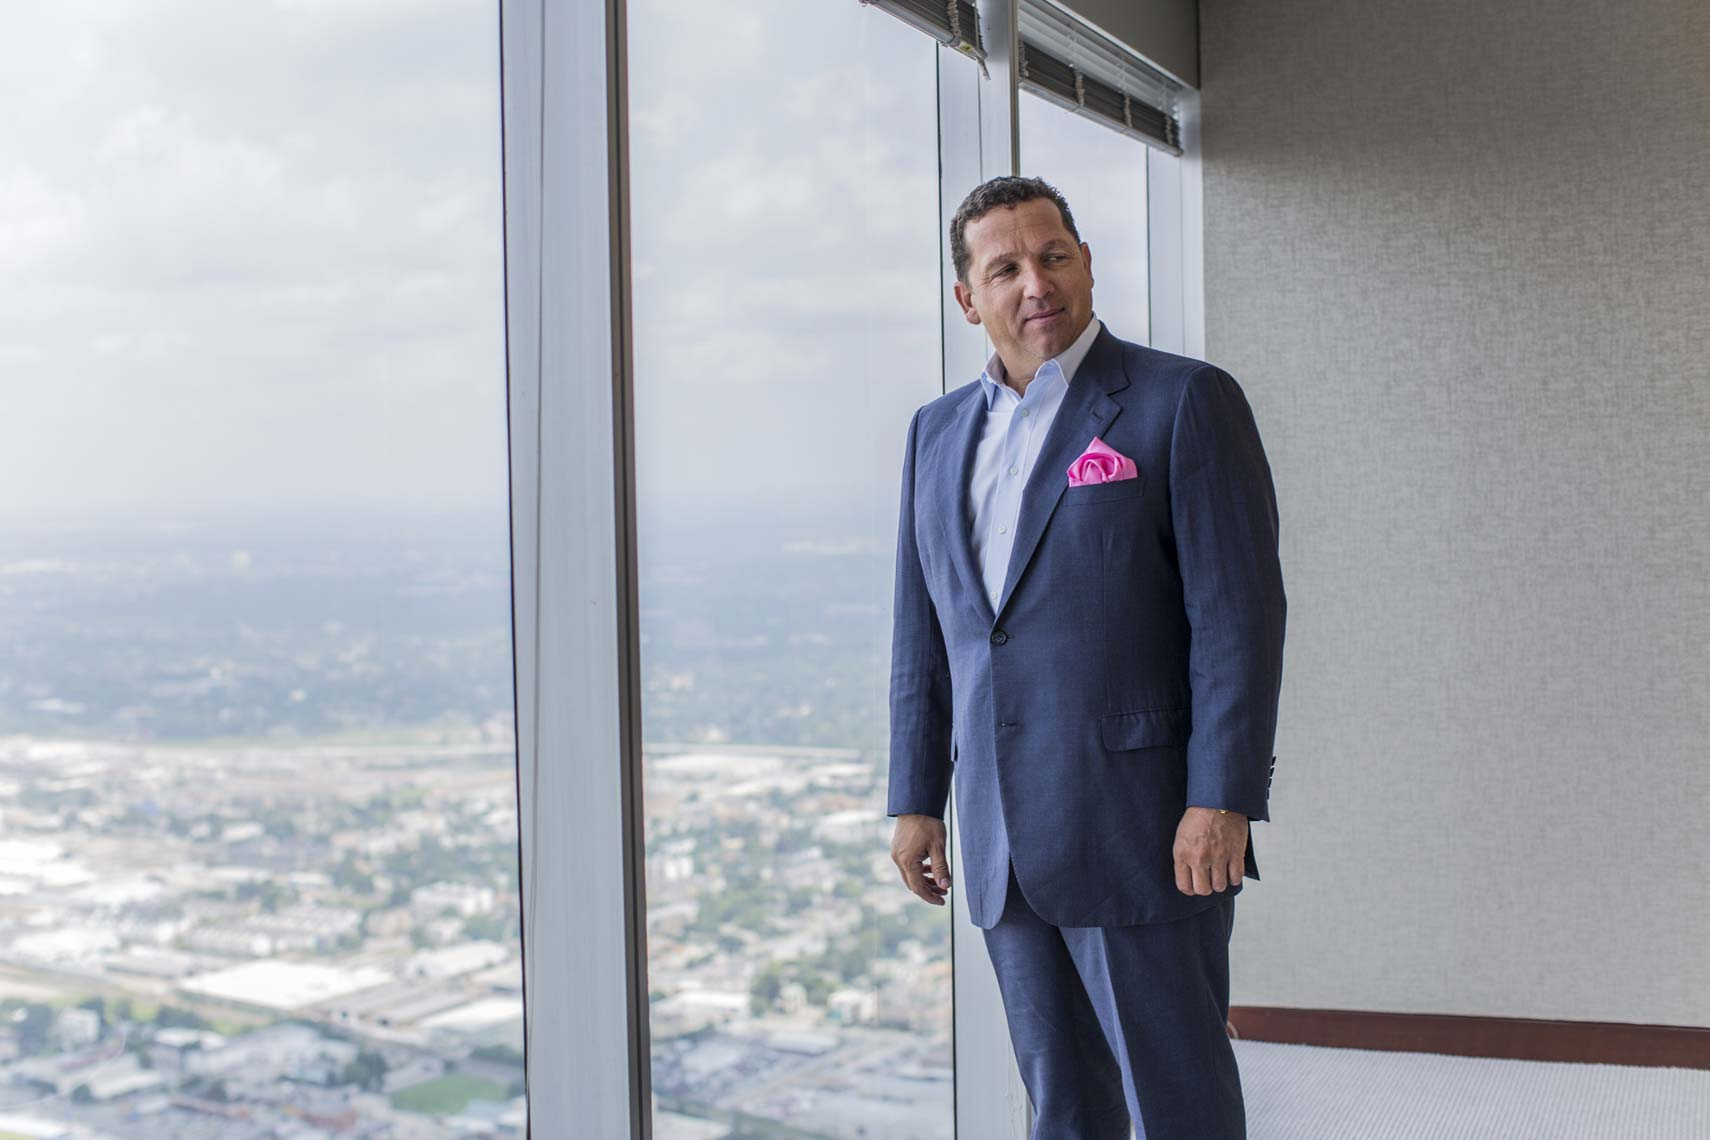 Houston Corporate Photographer - Portraits by Felix Sanchez Photography